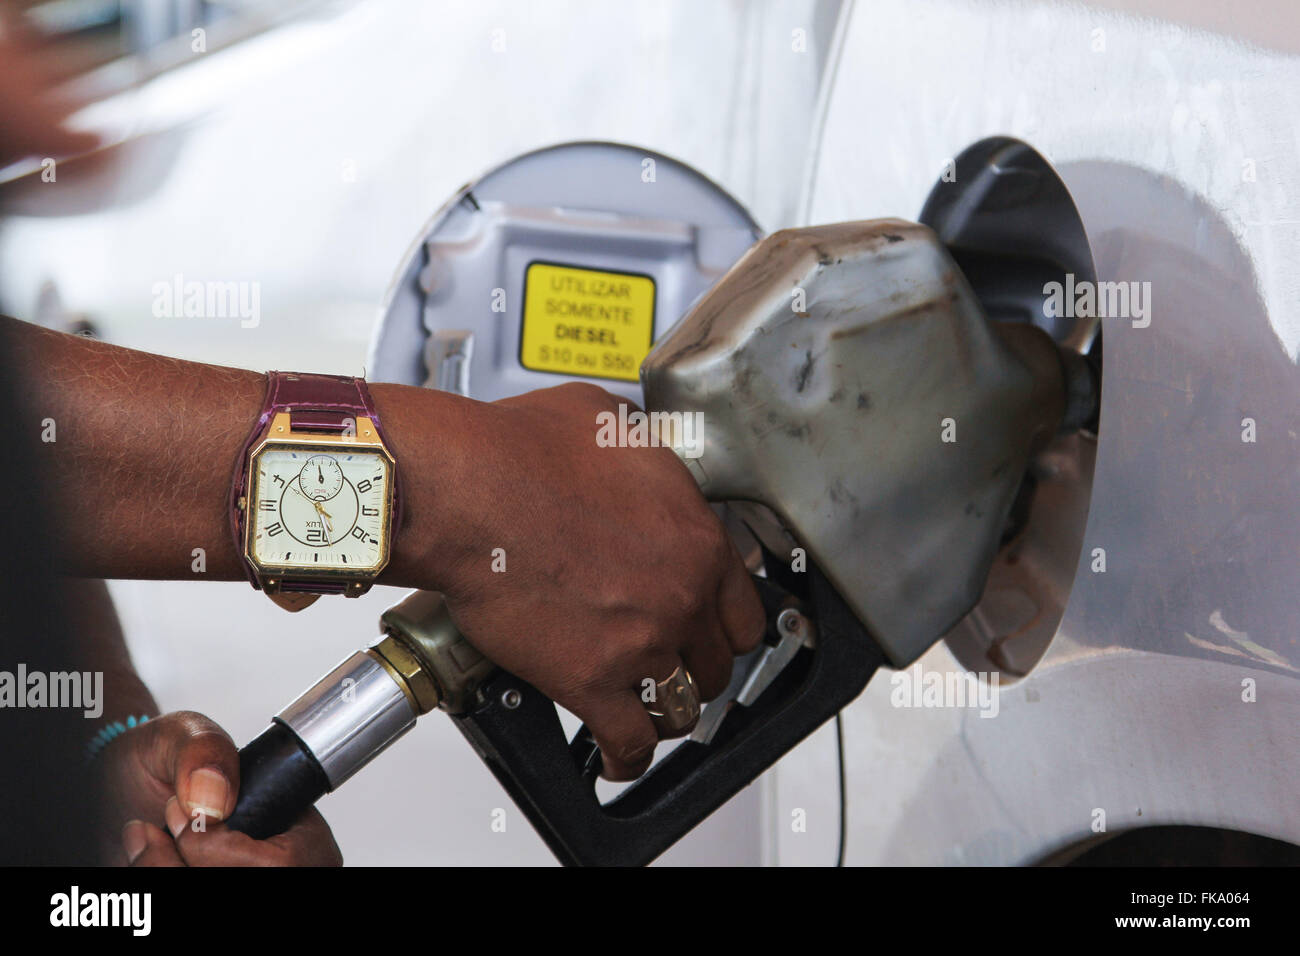 Individual vehicle fueling - Stock Image